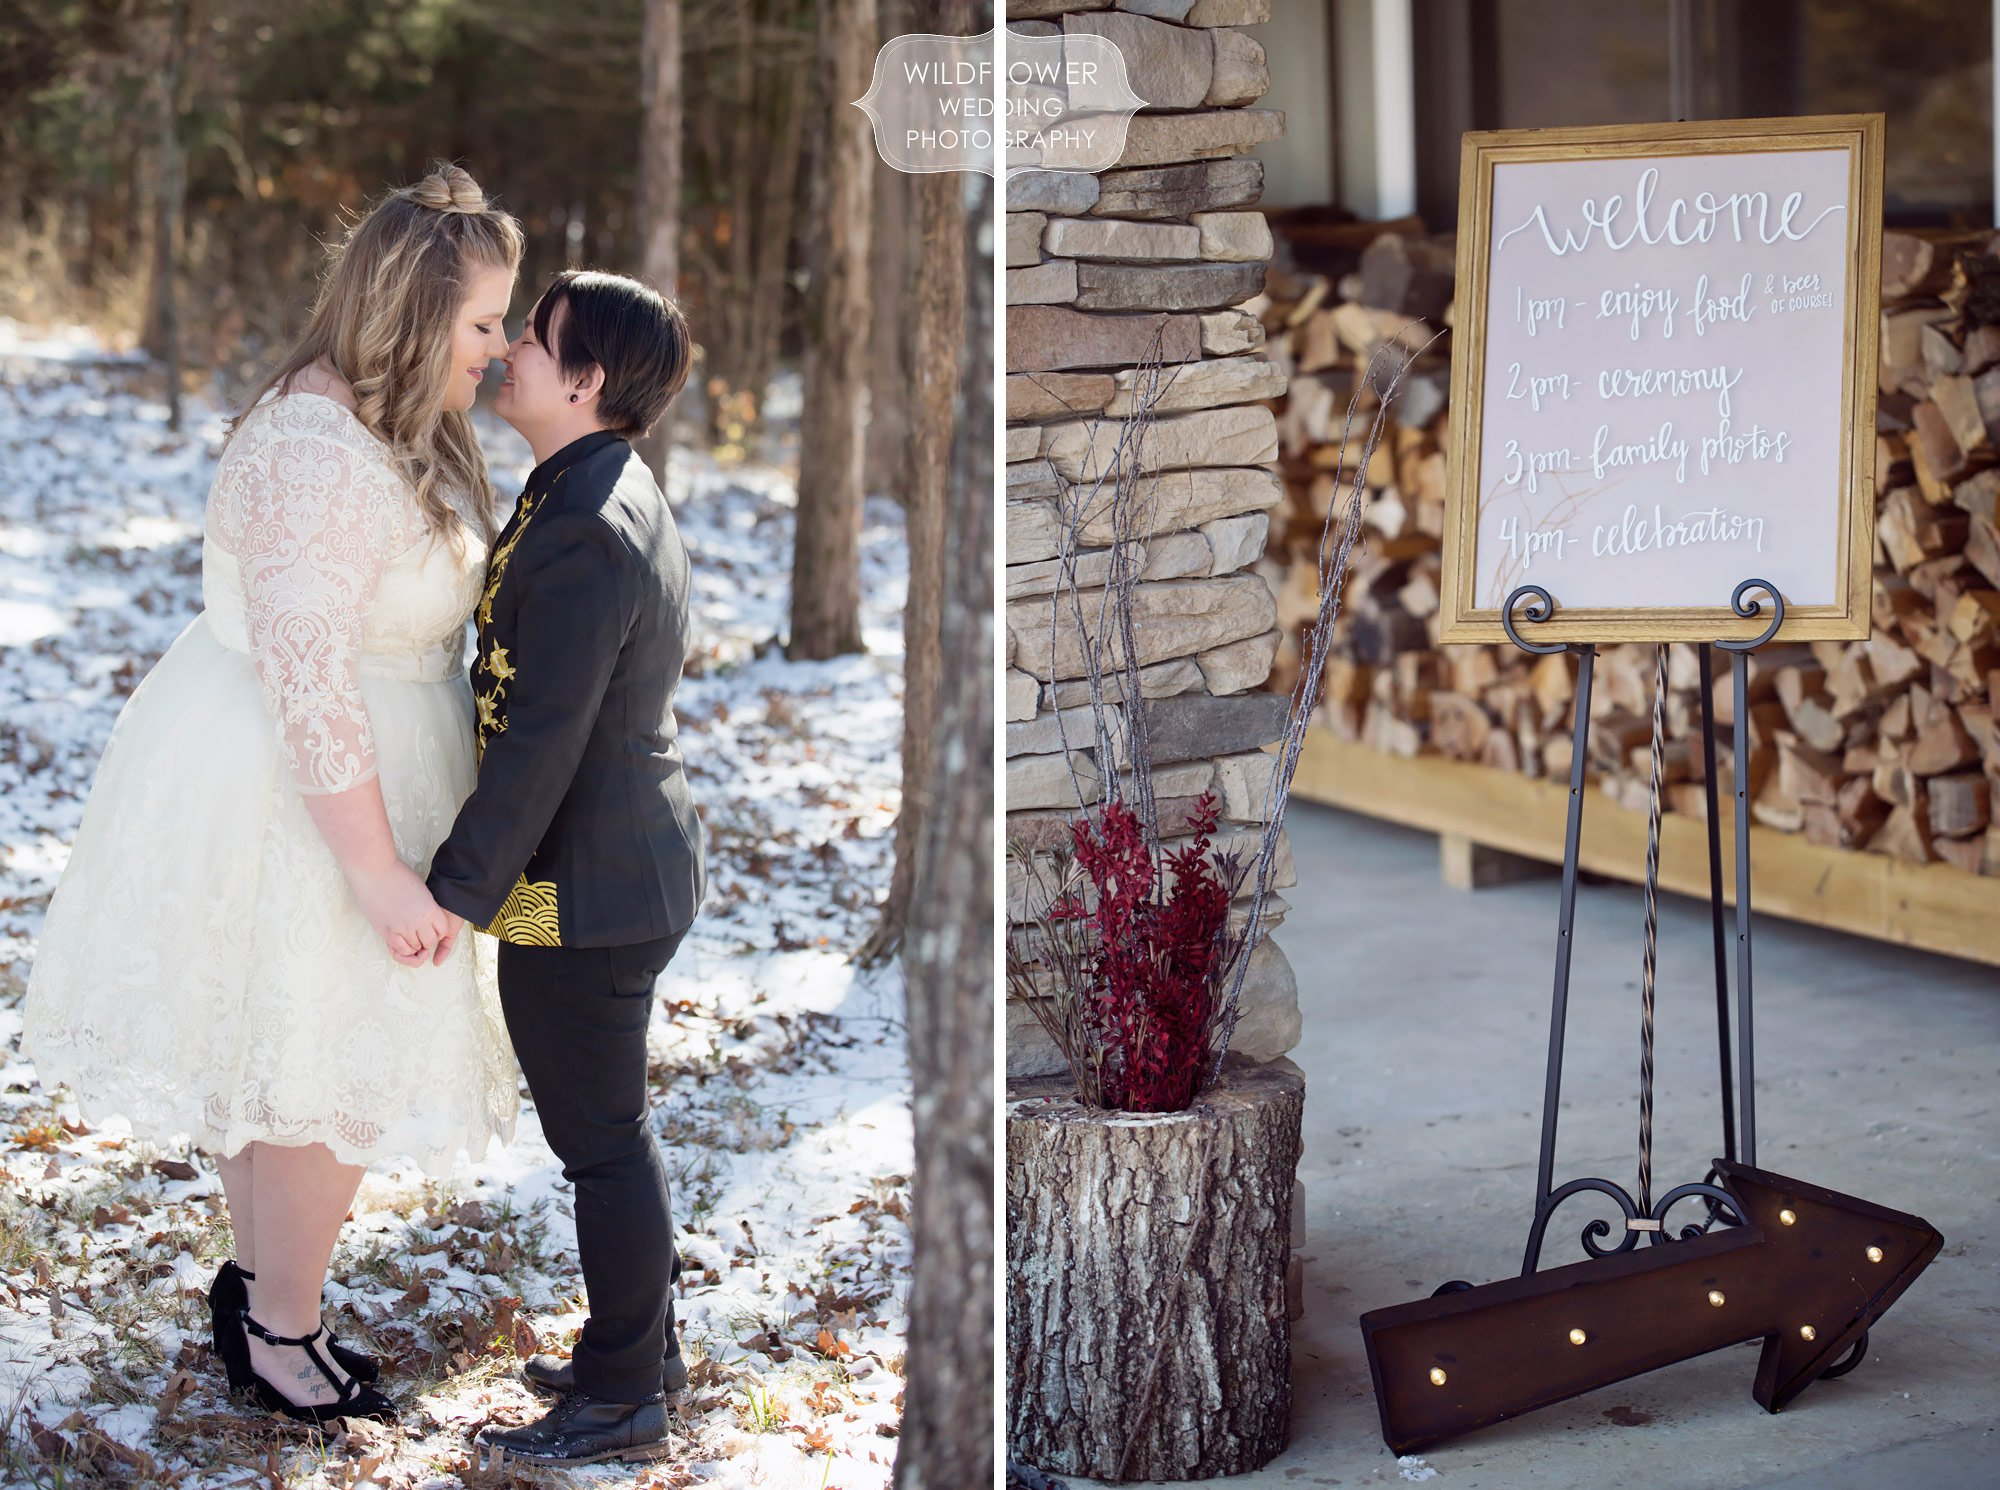 Two women embrace in snowy woods during their same sex wedding in Columbia, MO.